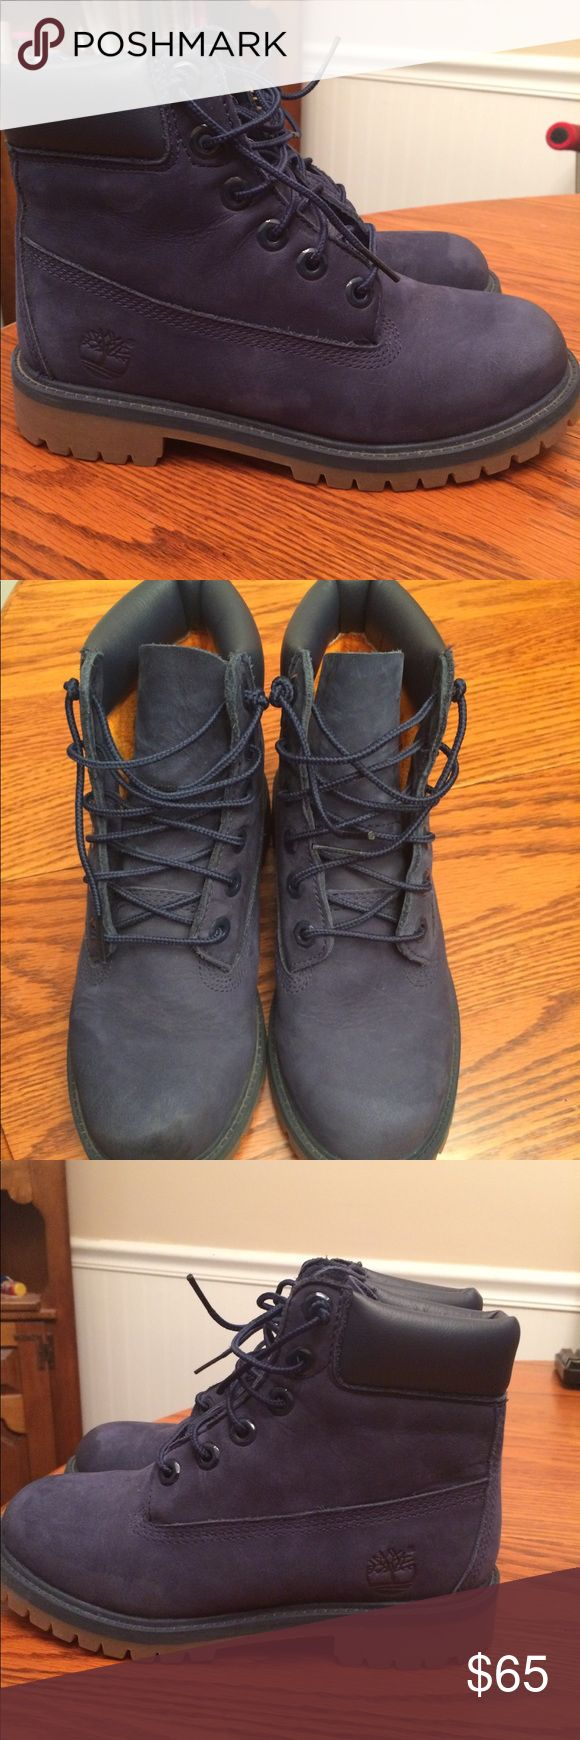 Grade School Timberland Boots Hardly worn Navy Blue Timberland Boots. No creasing, Close to brand new. Size 4 Timberland Shoes Boots